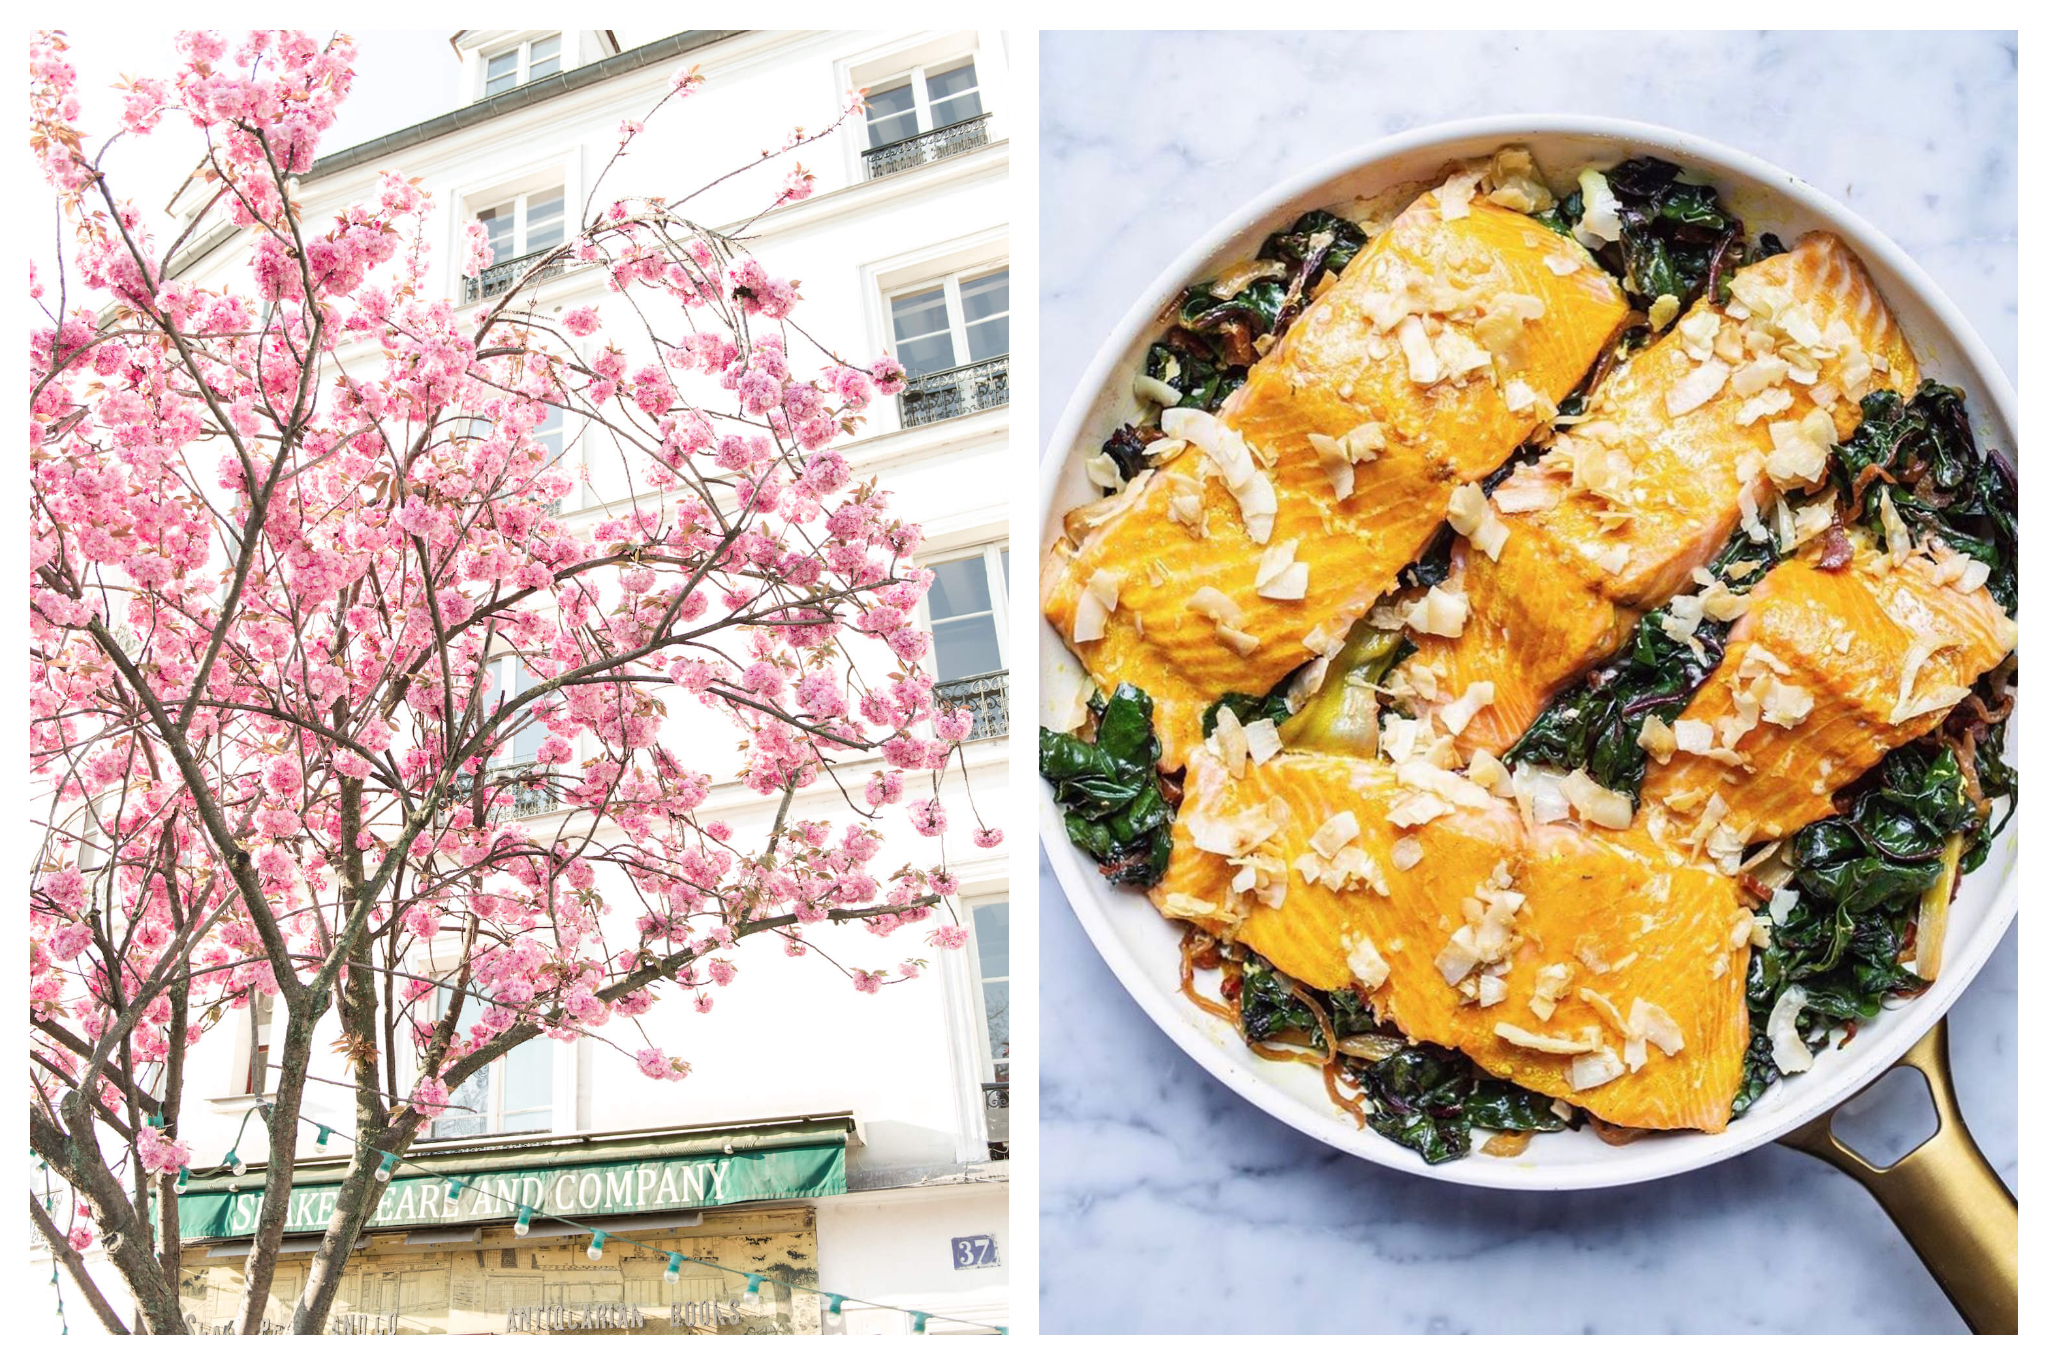 On left: Cherry blossoms bounce by Shakespeare & Co, a famed anglophone bookshop by the Notre Dame Cathedral. On right: Baked salmon with spinach and onions make for a cozy evening meal.